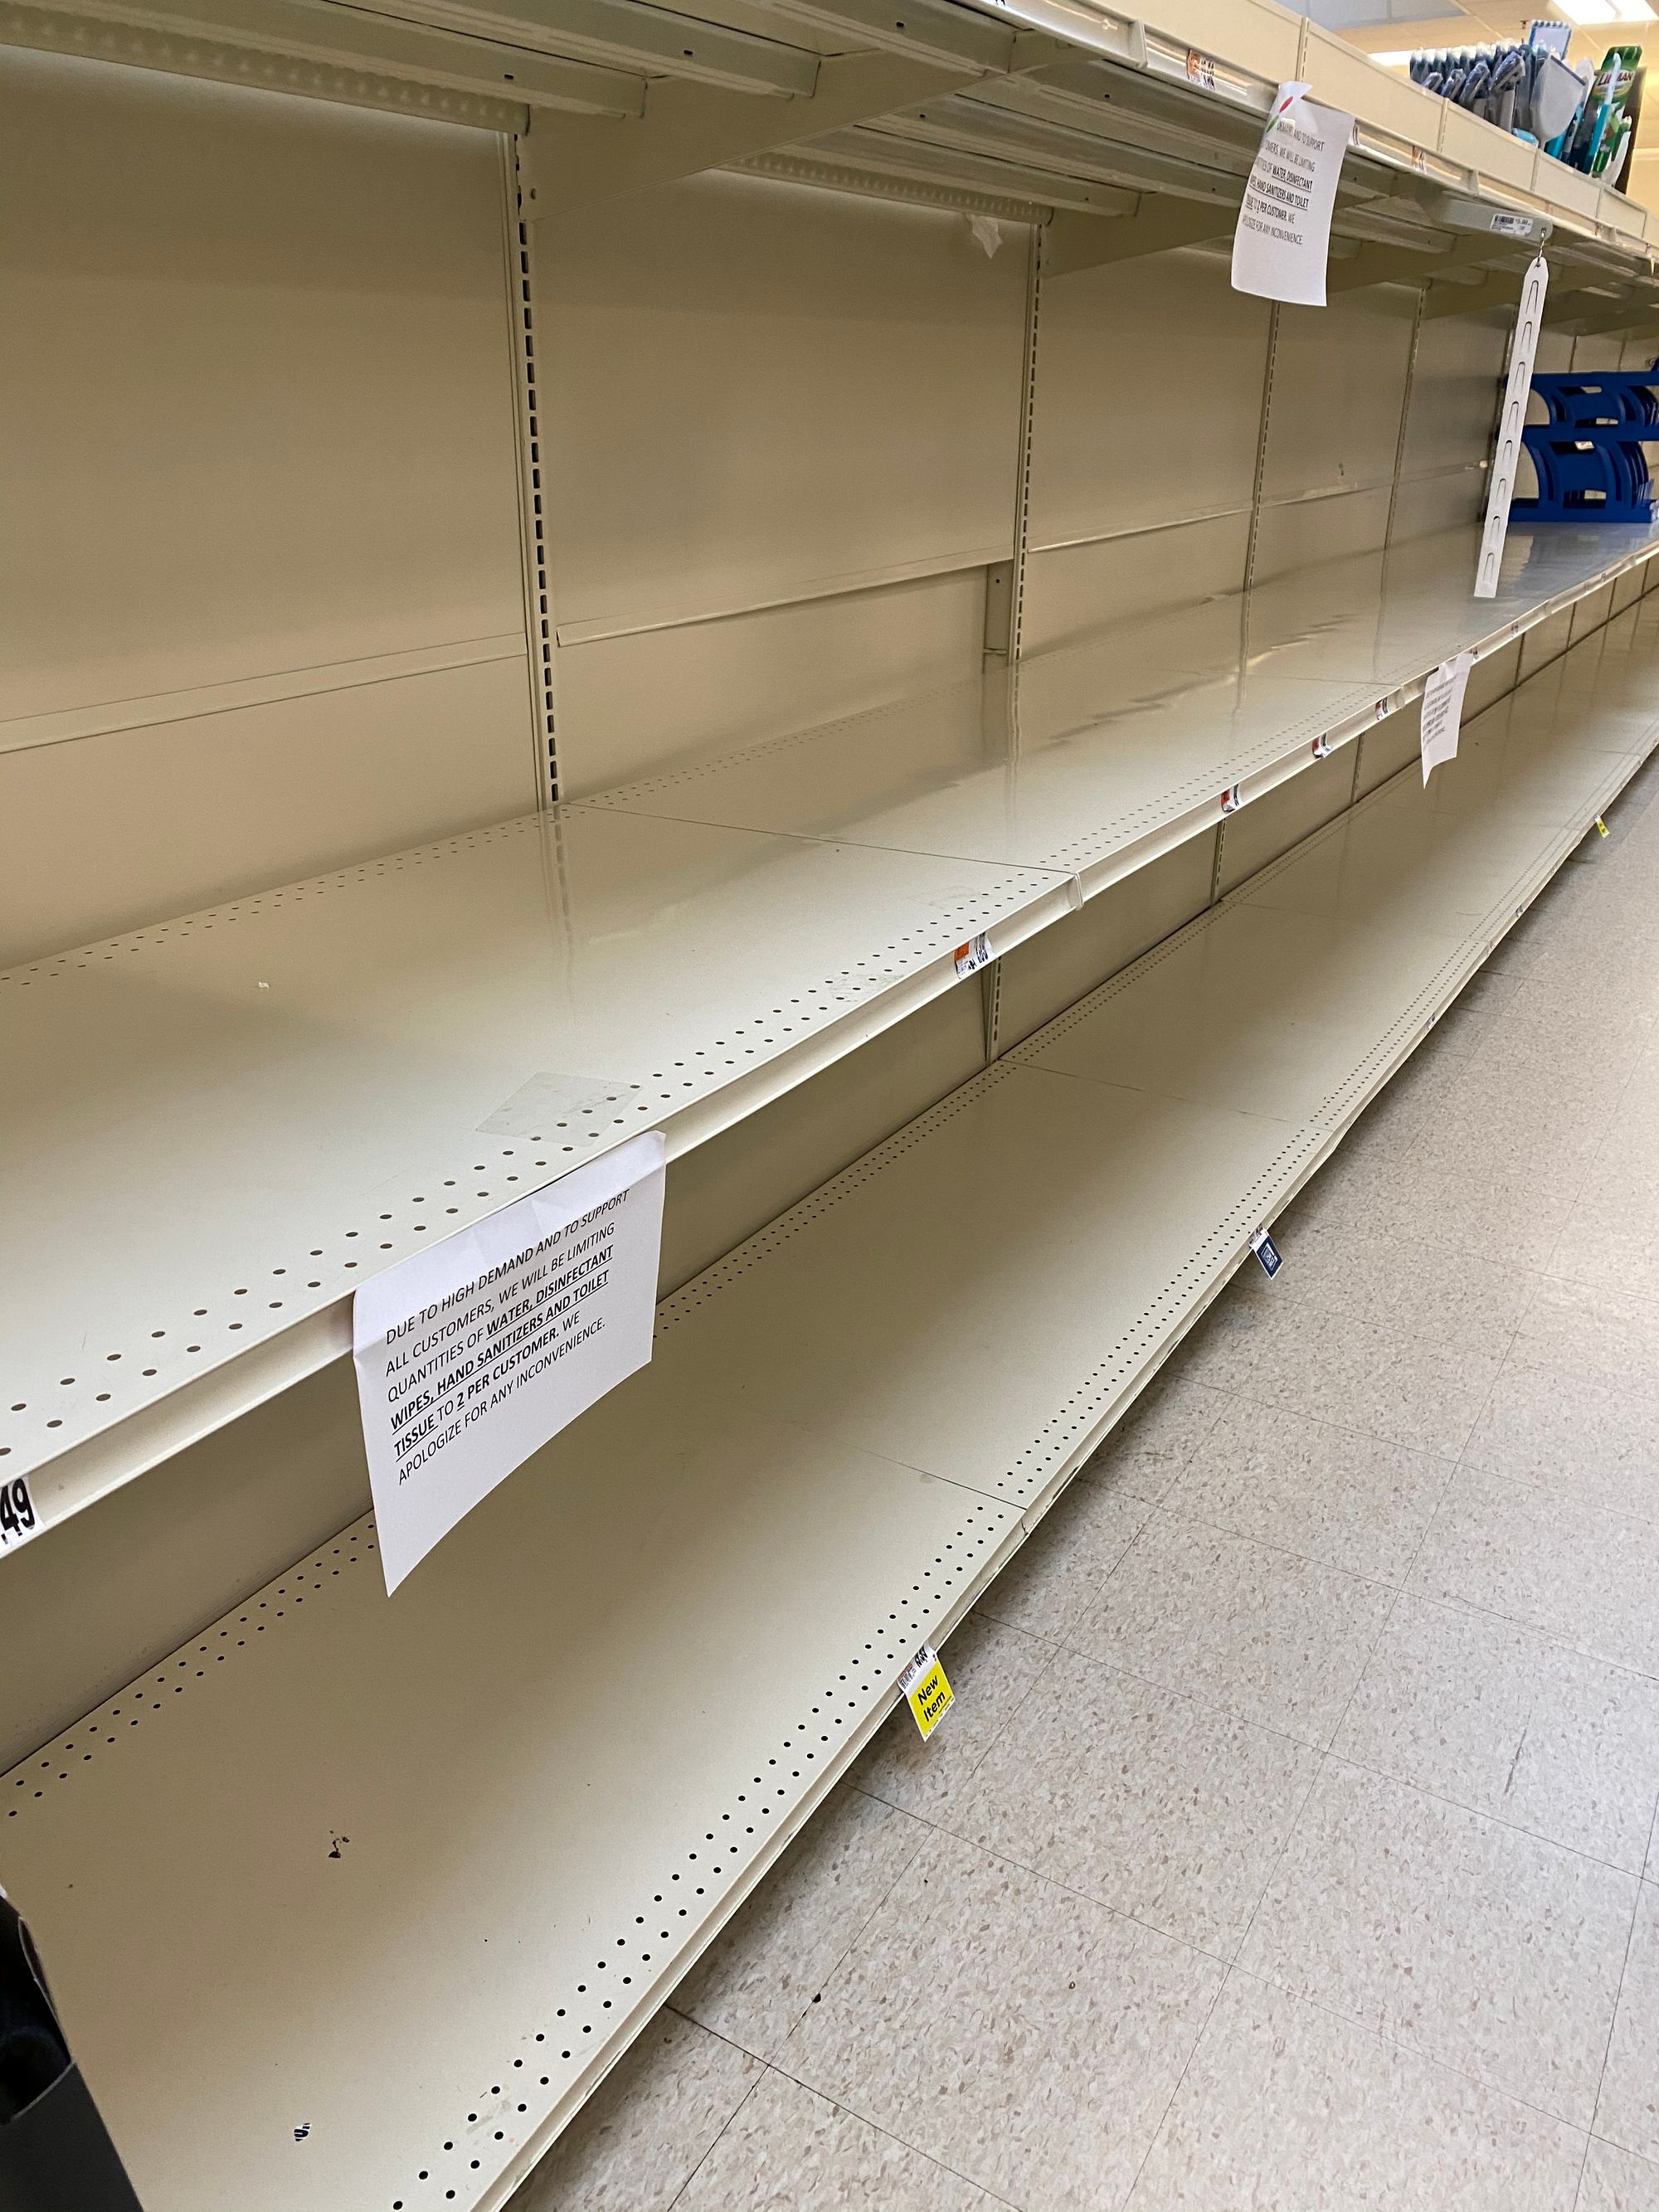 Empty shelves at grocery store